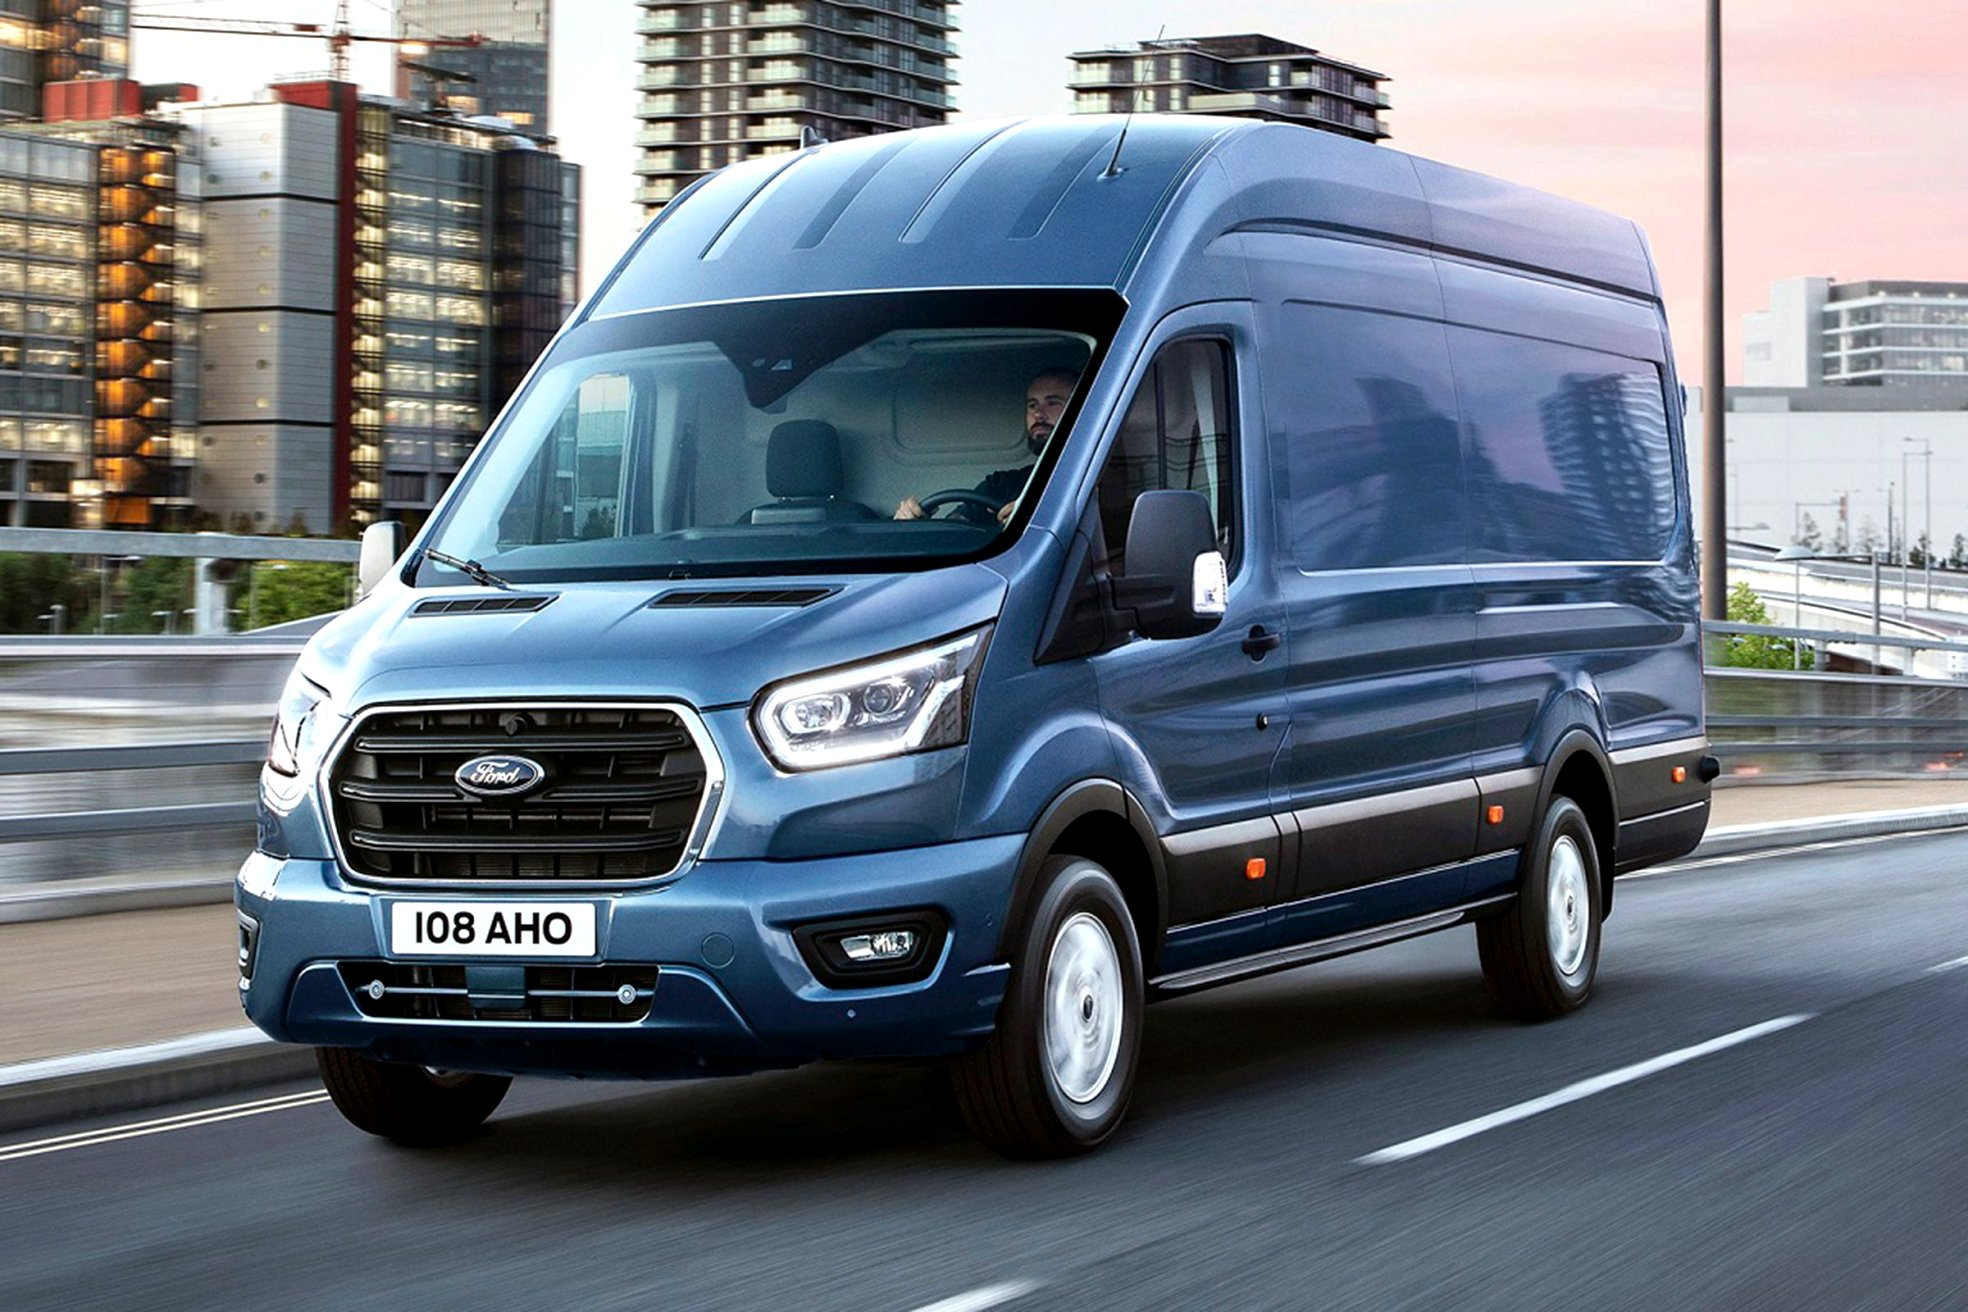 2020 ford van 4x4 Pictures